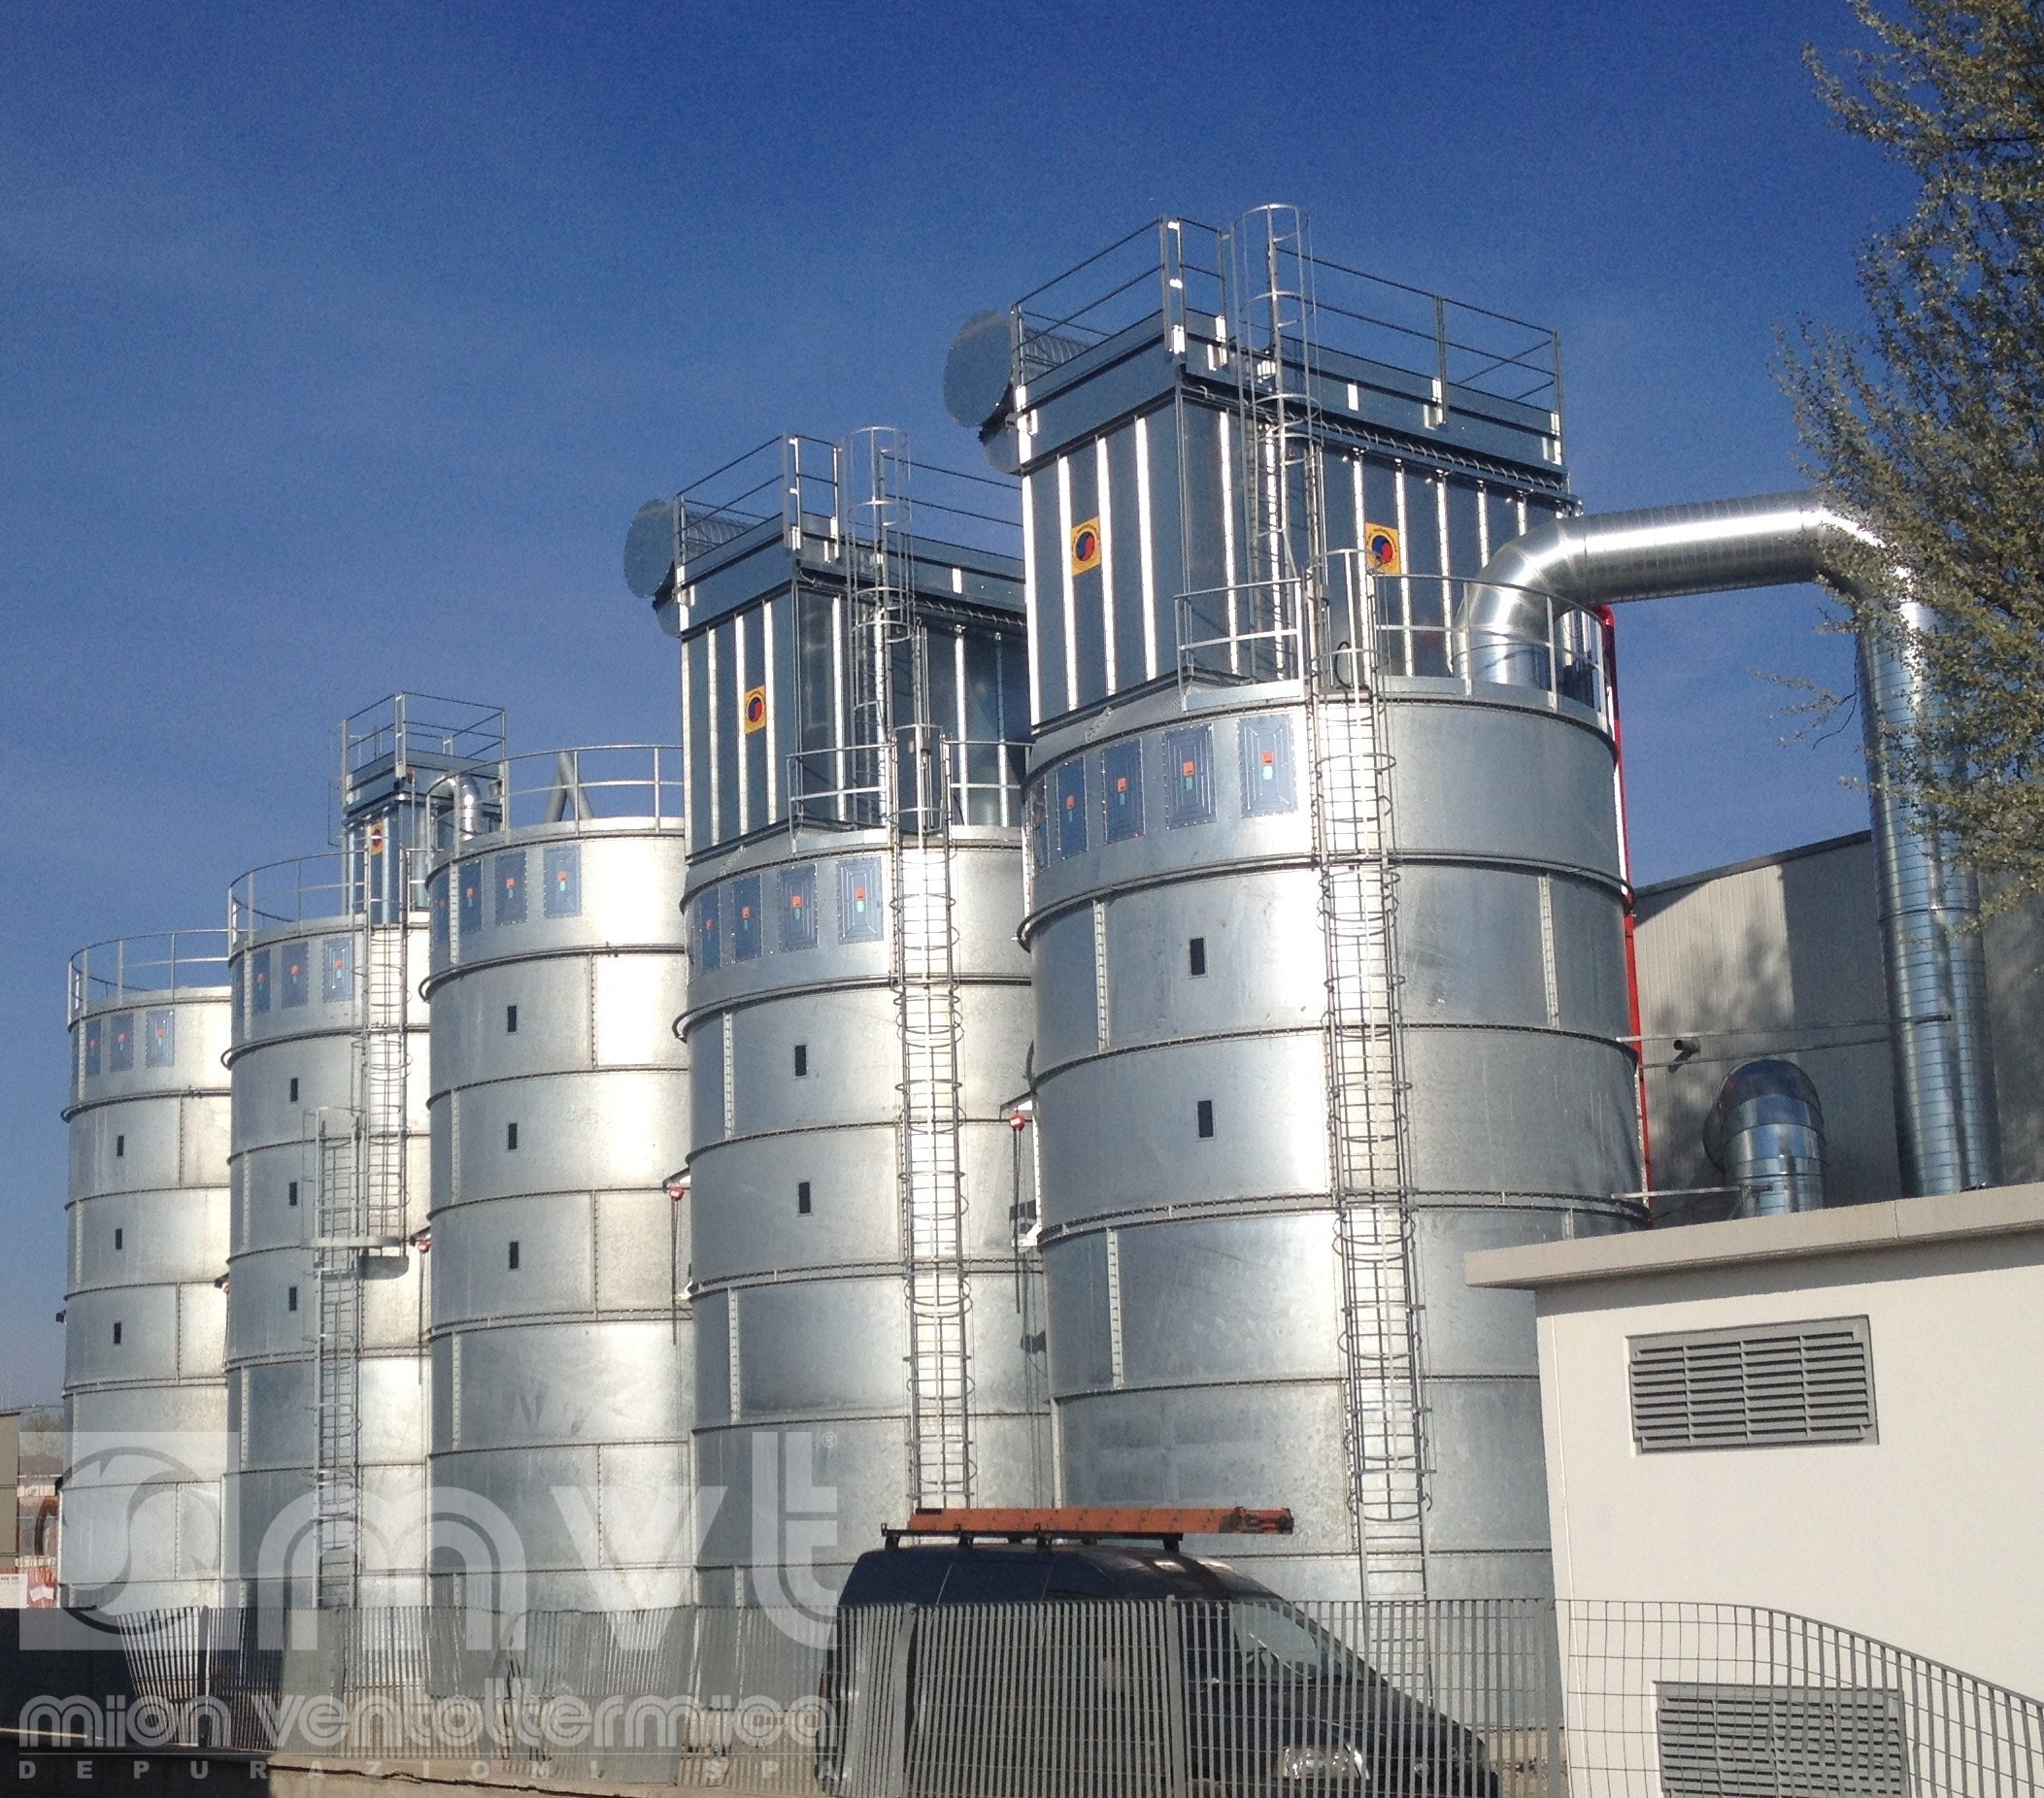 Silos with ATEX explosion-proof panels and self-cleaning filterings